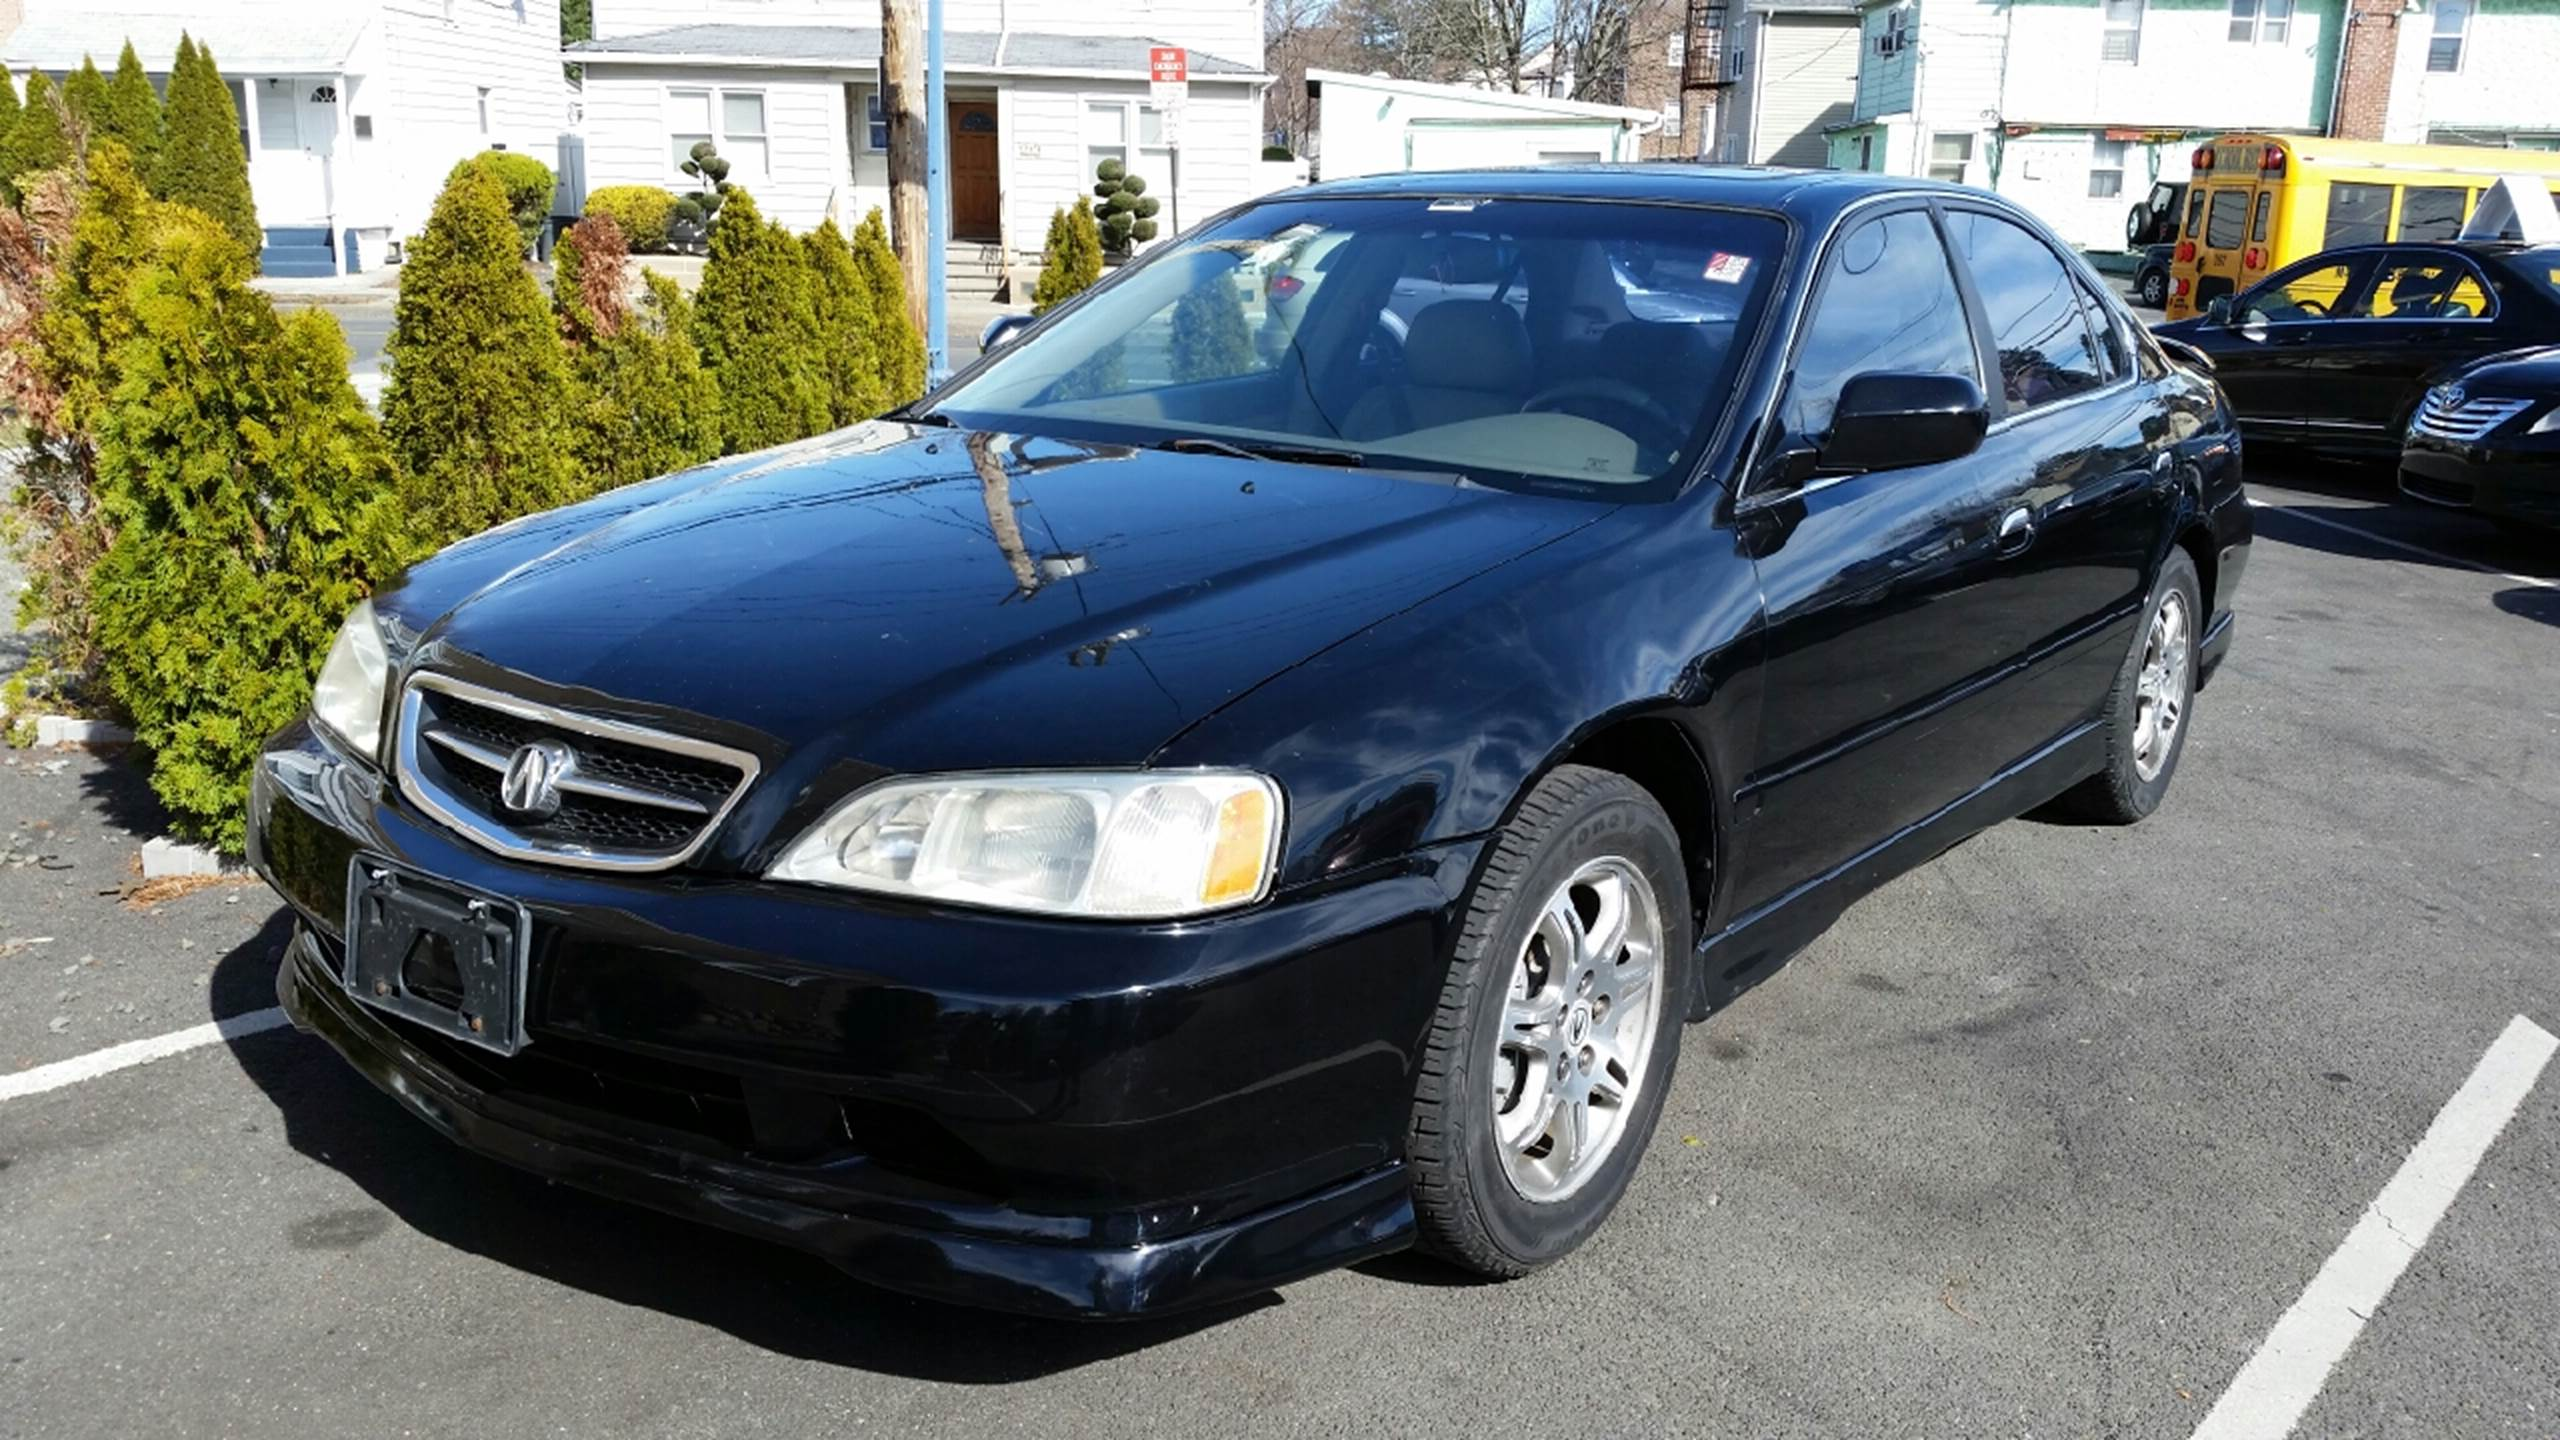 1999 Acura TL for sale in Yonkers, NY